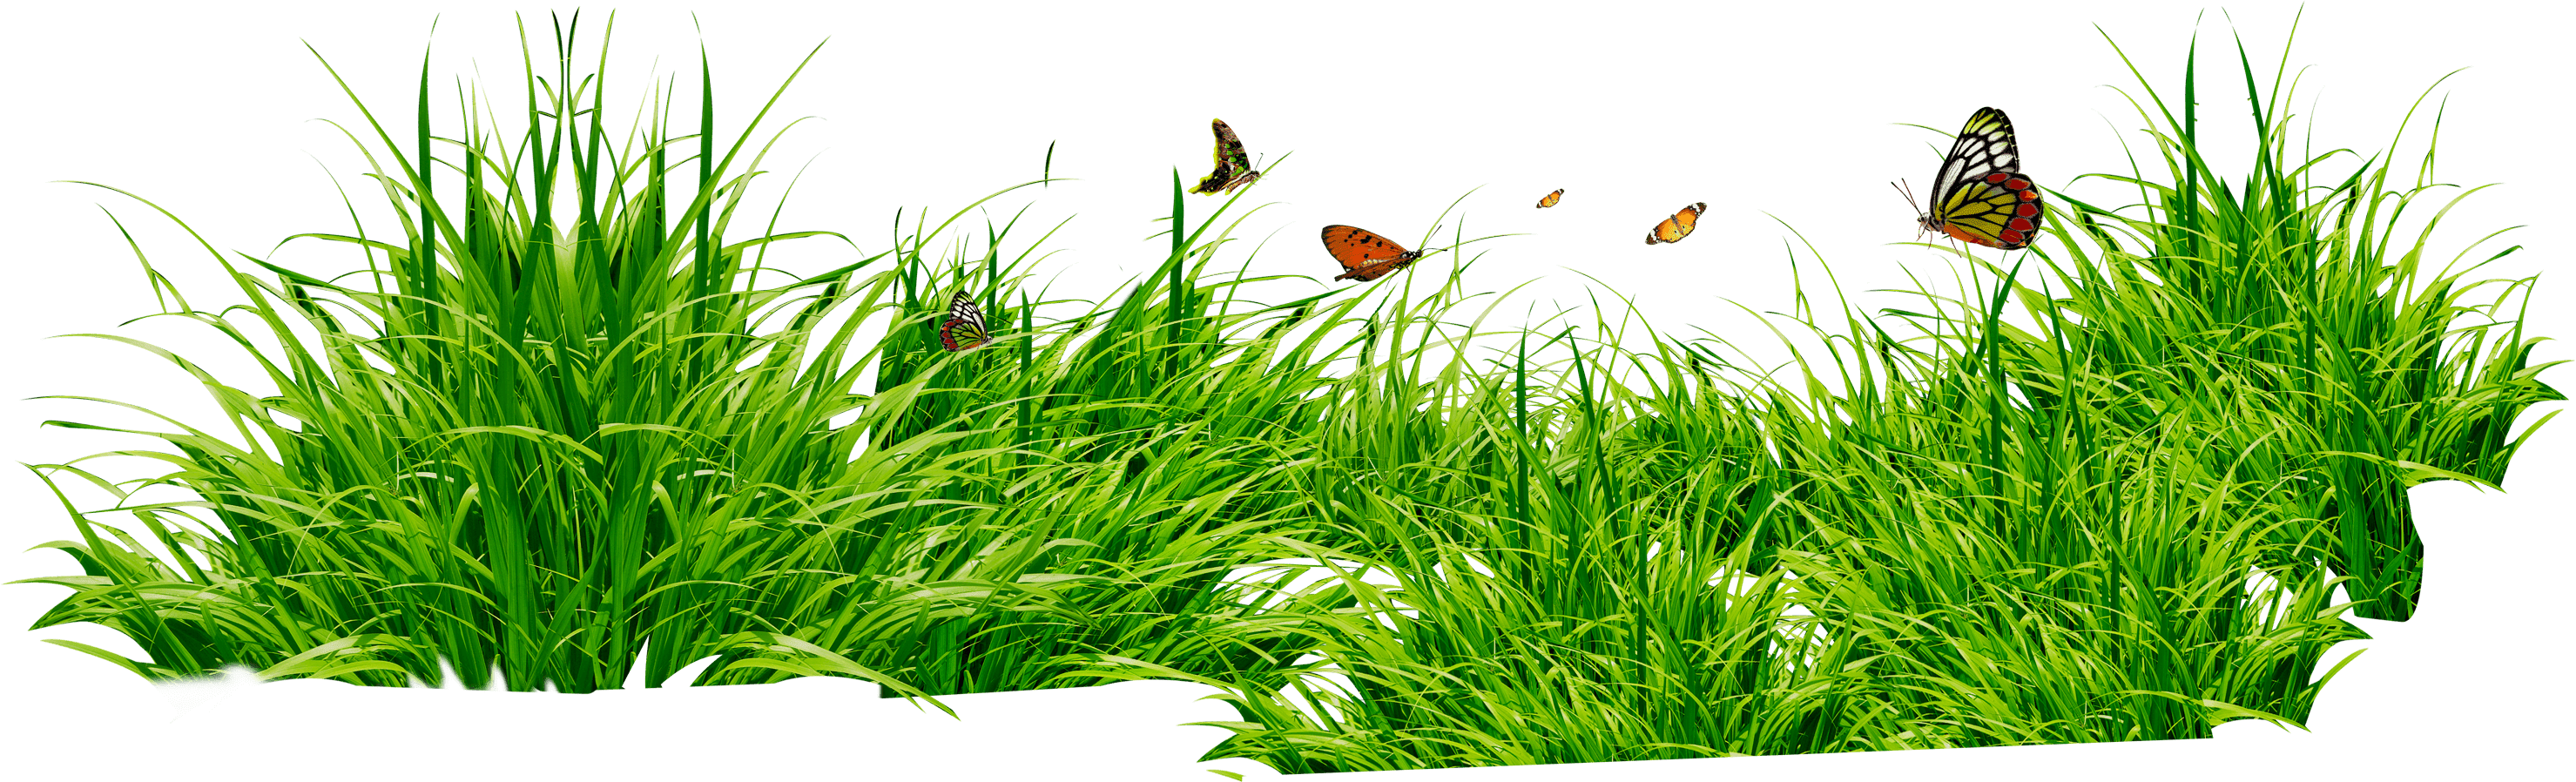 Grass with insects png. Grasshopper clipart patch